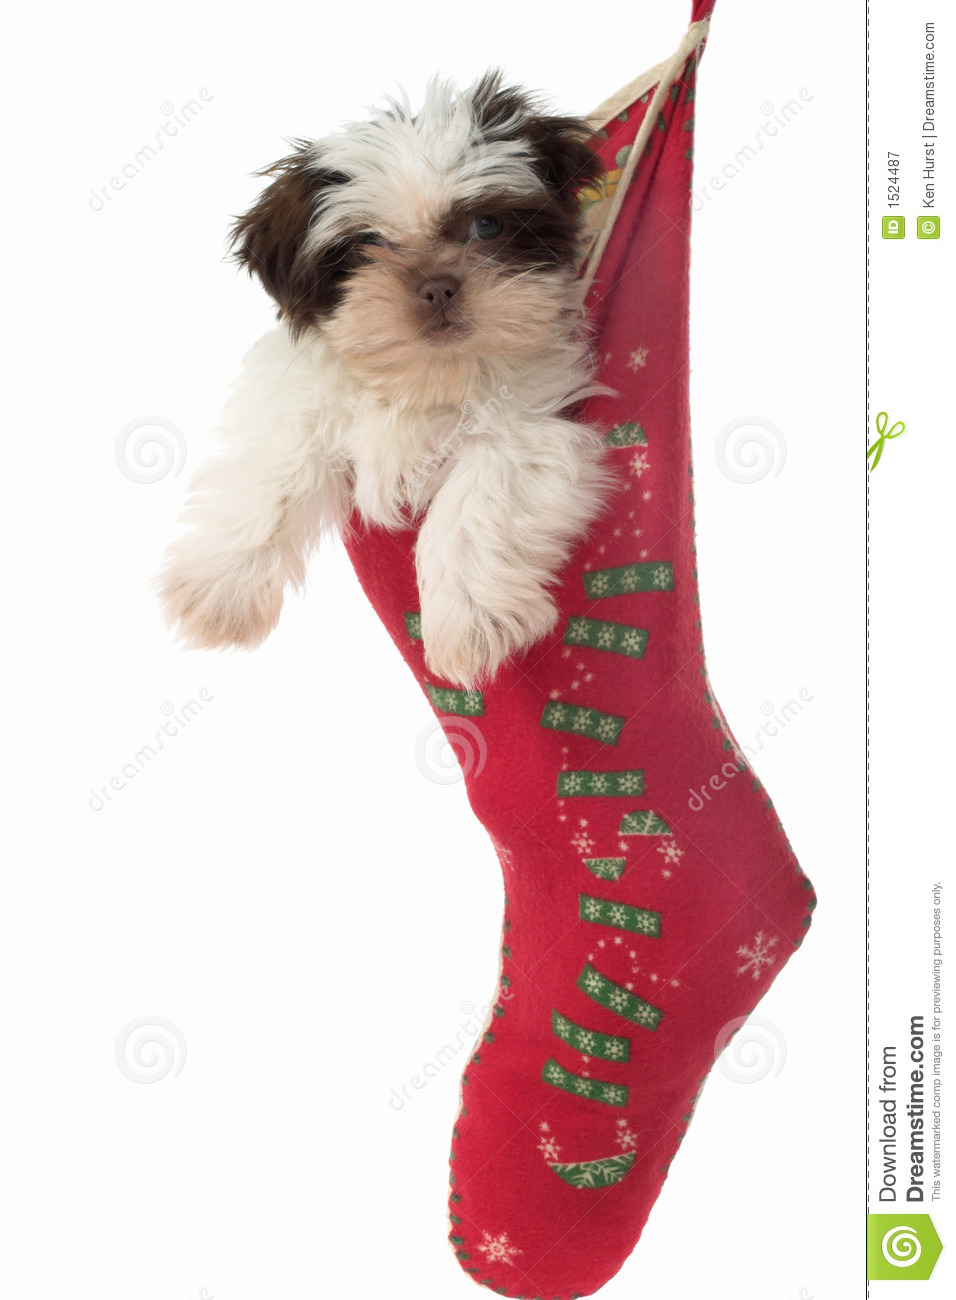 Puppy Christmas Stockings For Dogs